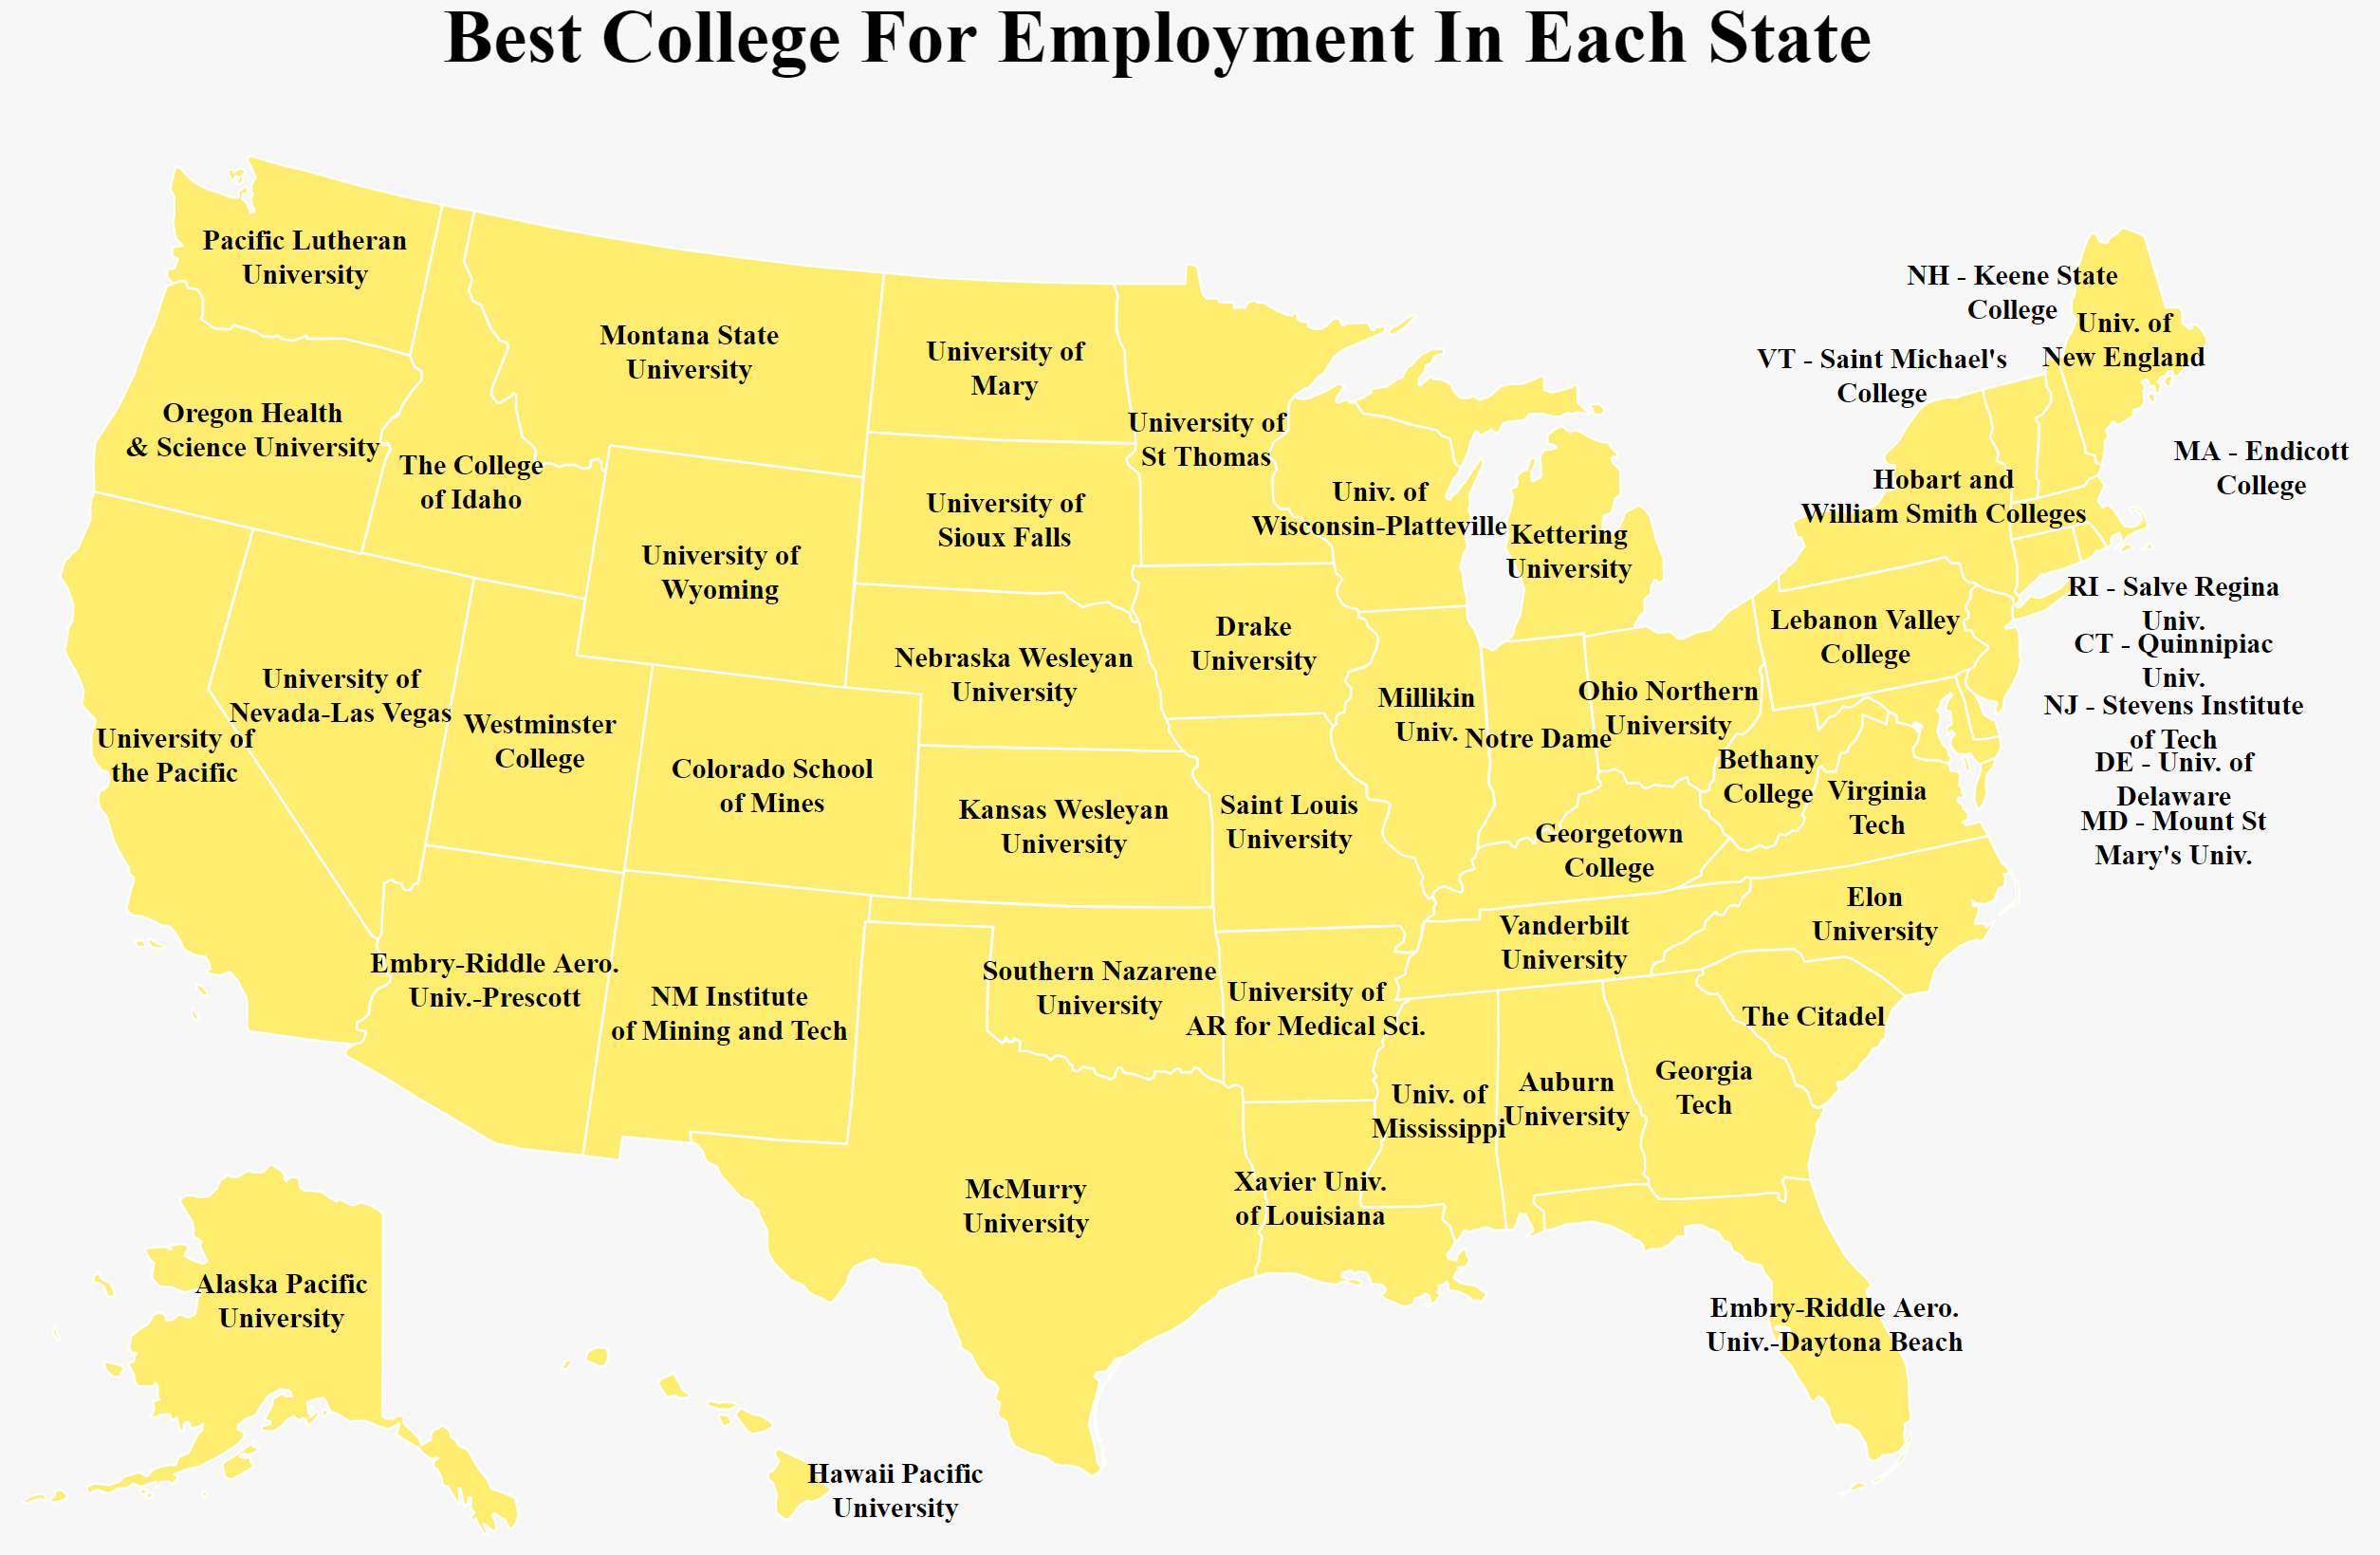 The Best College In Each State For Getting A Job